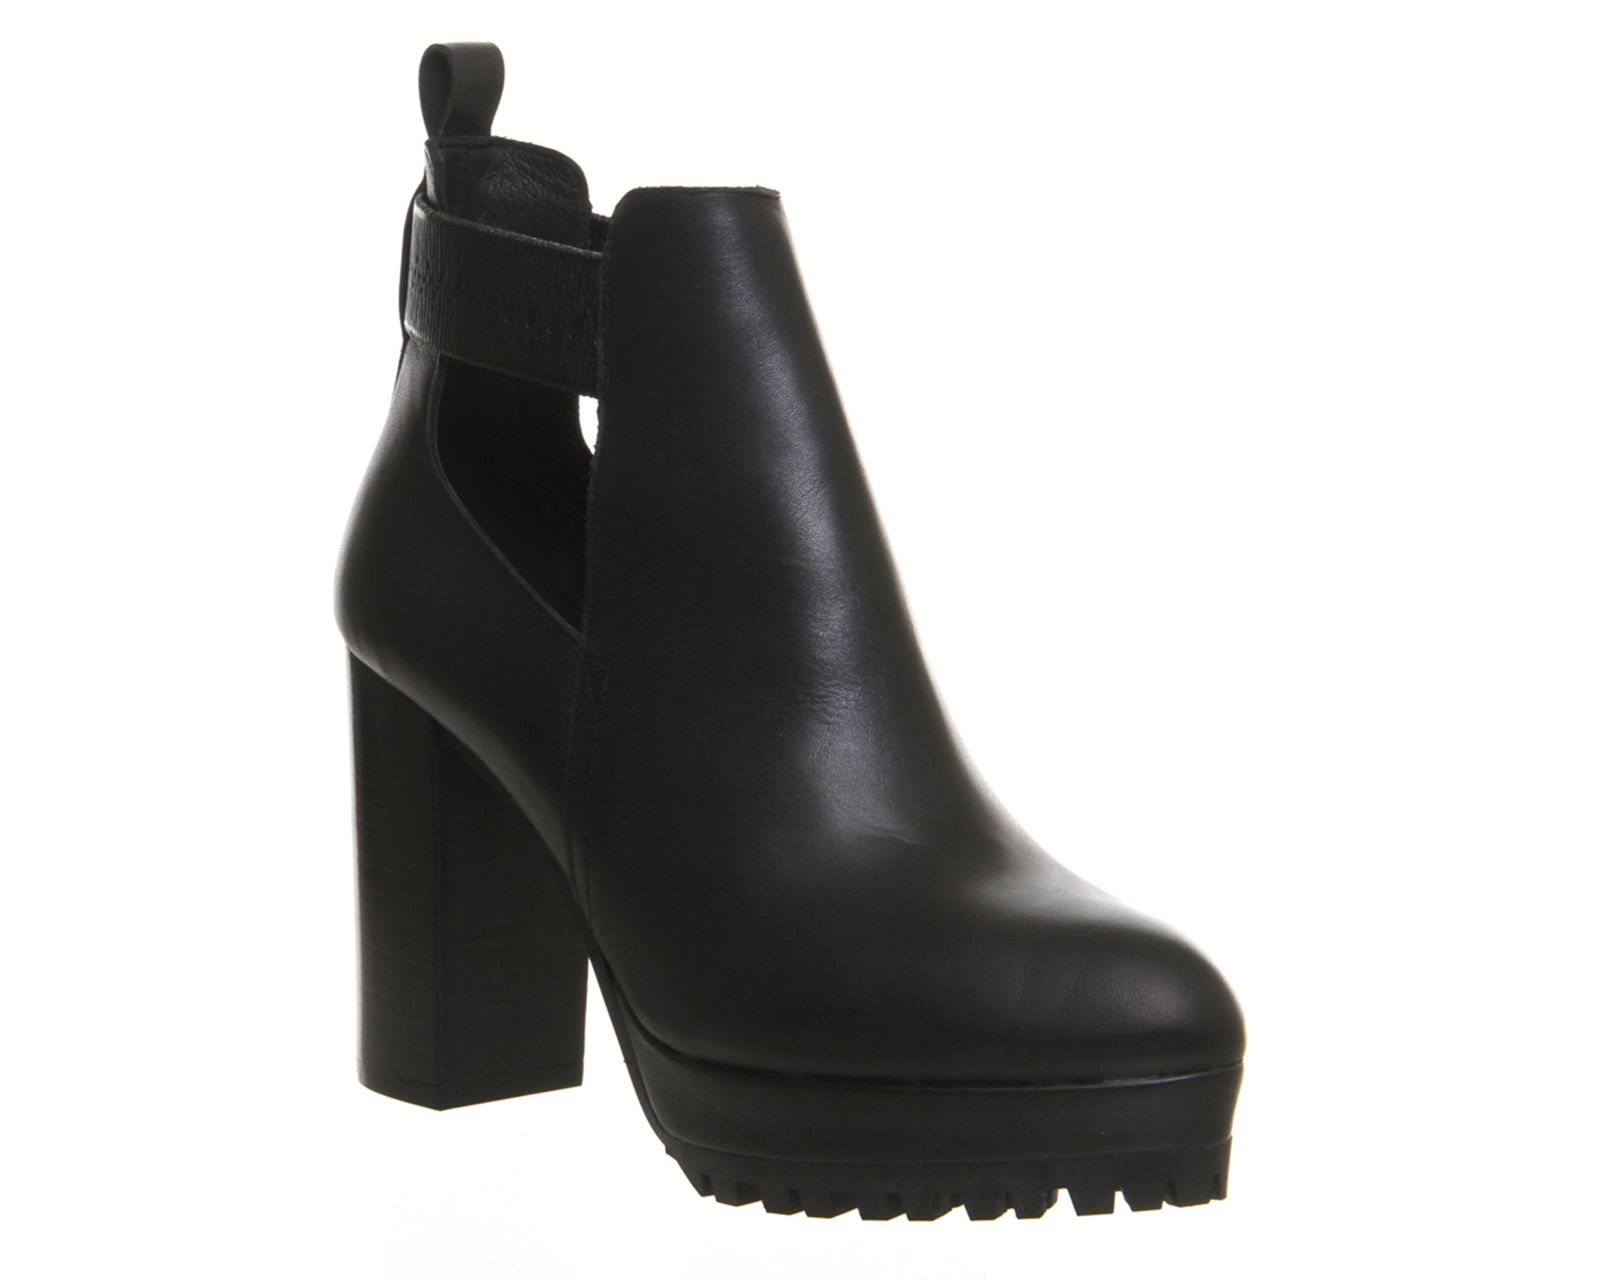 Office Frolic Cut Out Cleated Shoe Boots Black Leather Ankle